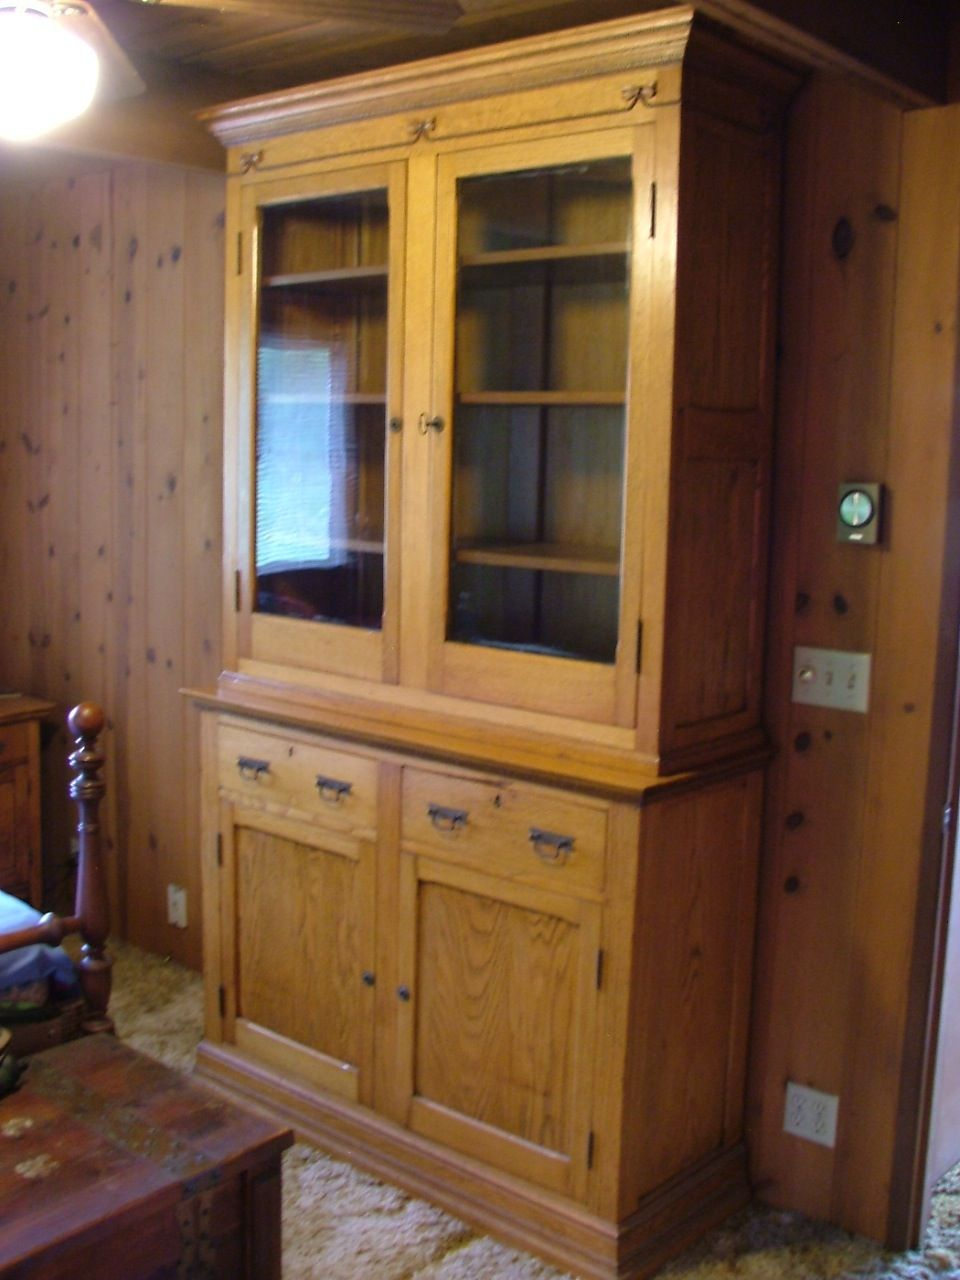 Large Antique Oak Cabinet - Large Antique Oak Cabinet Cool Wisconsin Stuff For Sale Pinterest